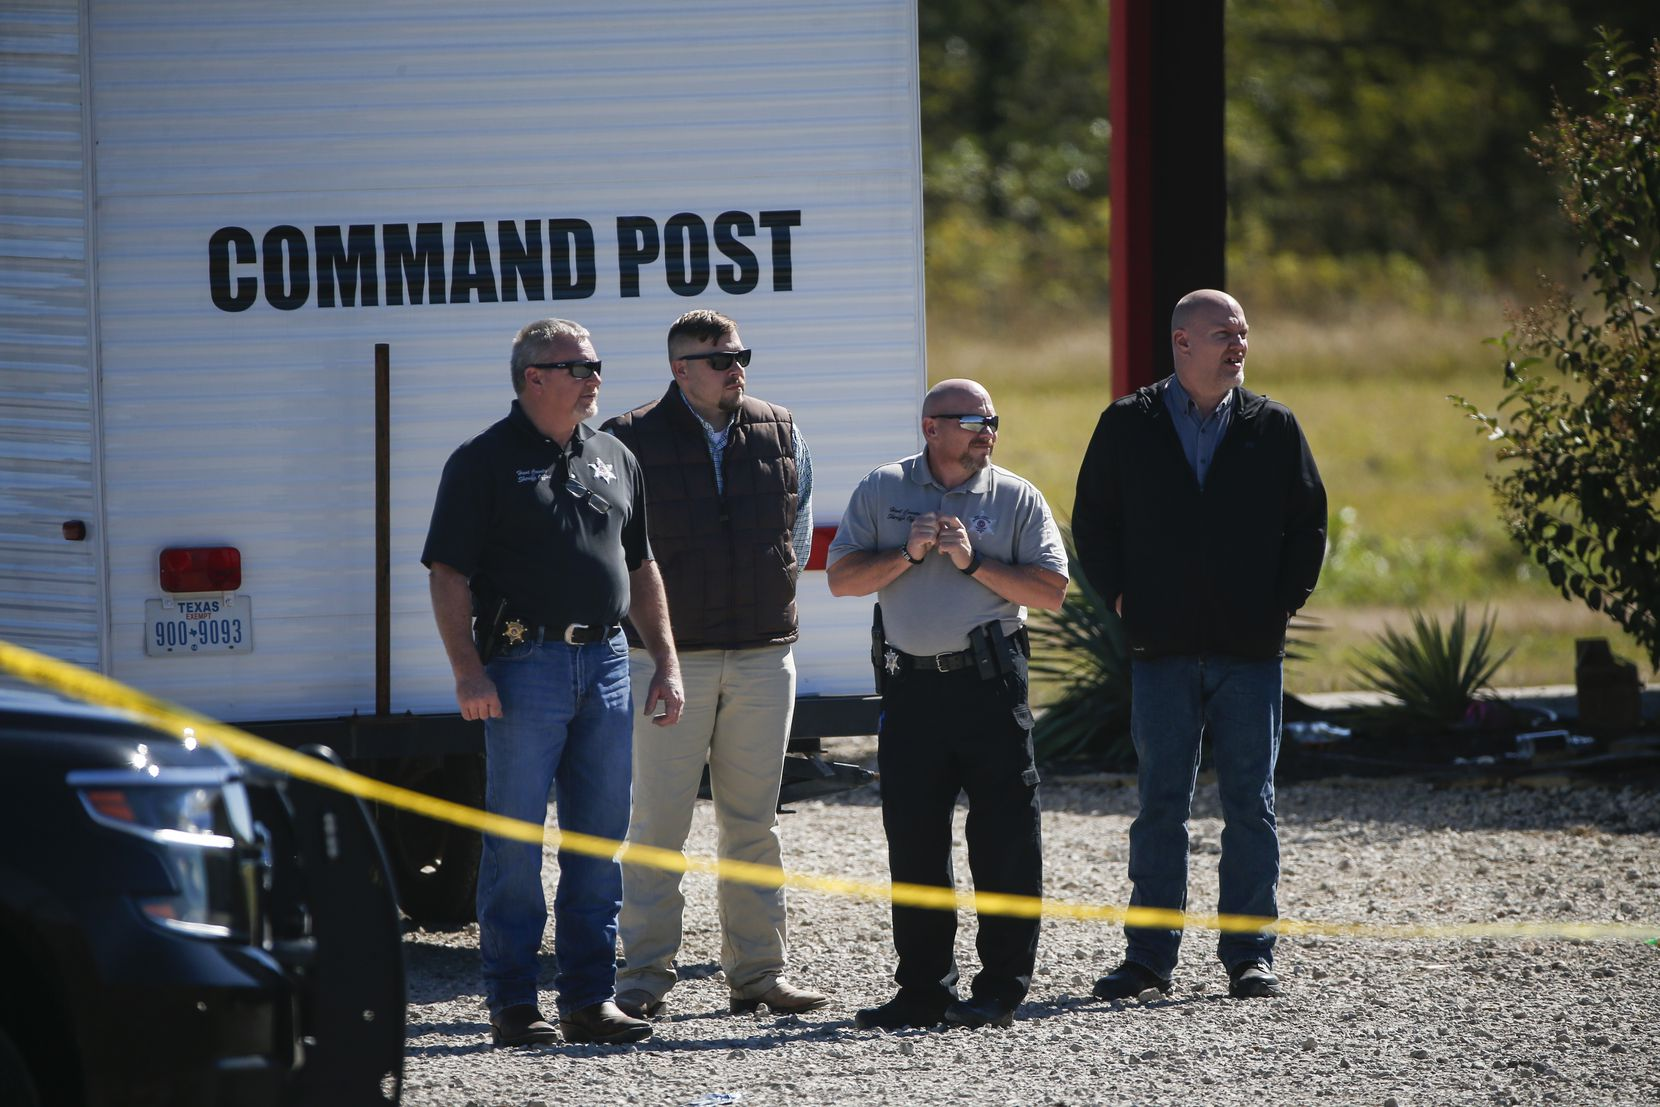 Investigators worked the crime scene Sunday after a shooting at the Party Venue on Highway 380 in Greenville.